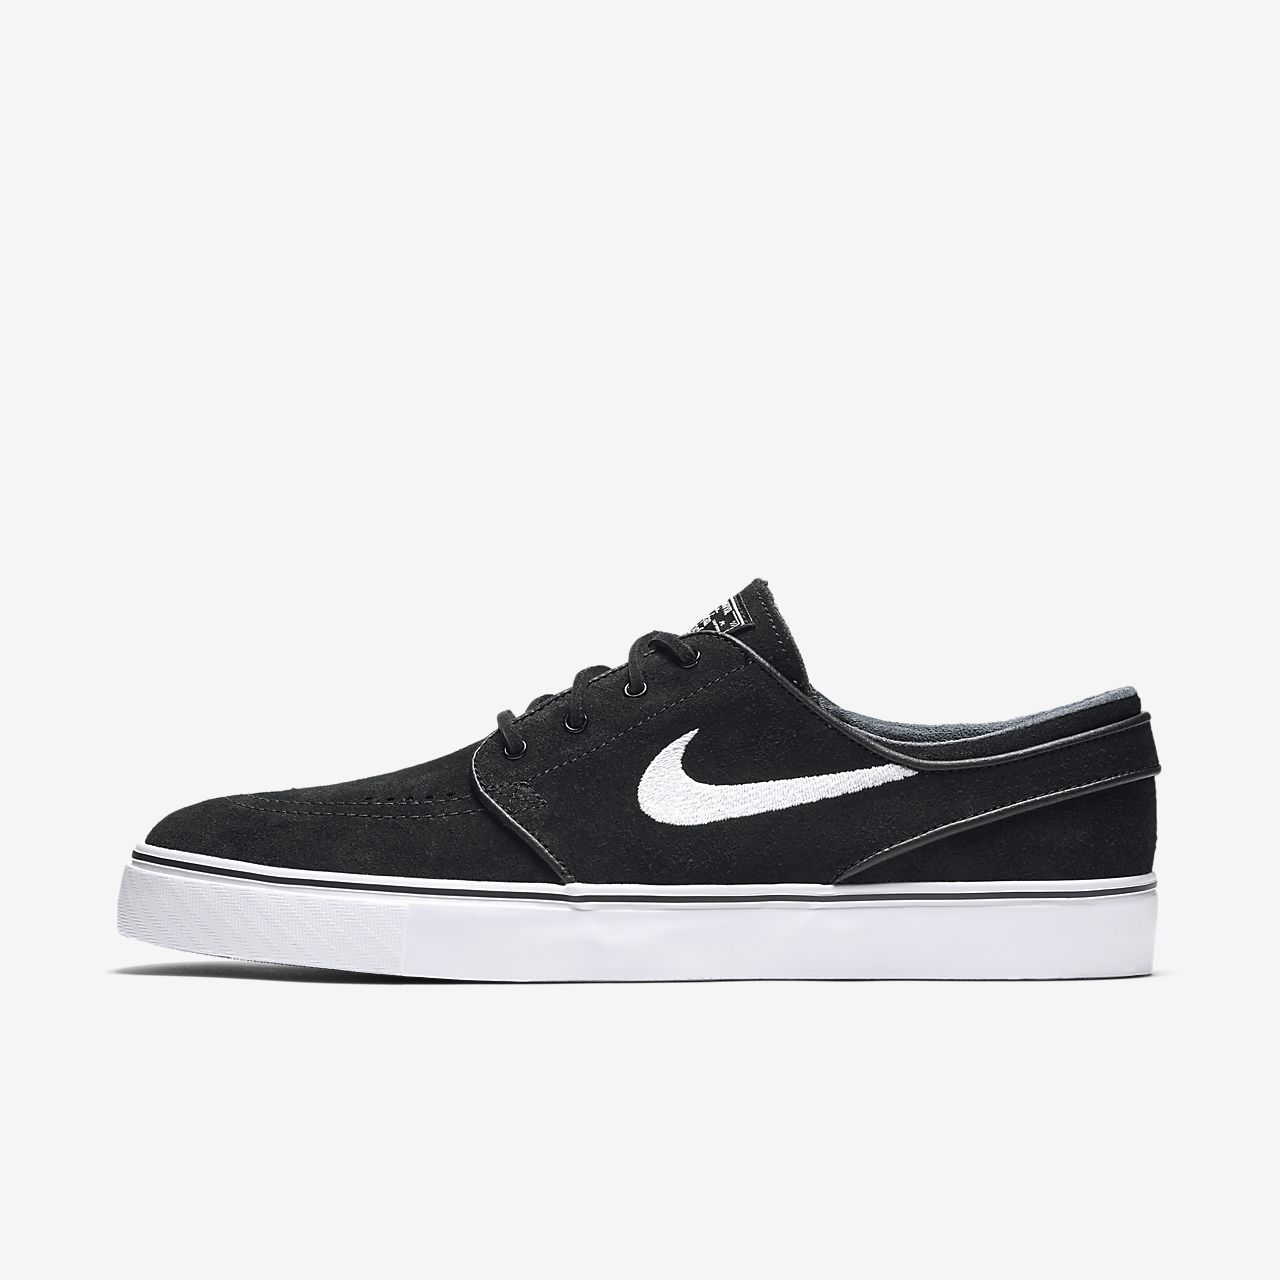 check out aca70 3edda ... Nike SB Zoom Stefan Janoski OG Men s Skate Shoe